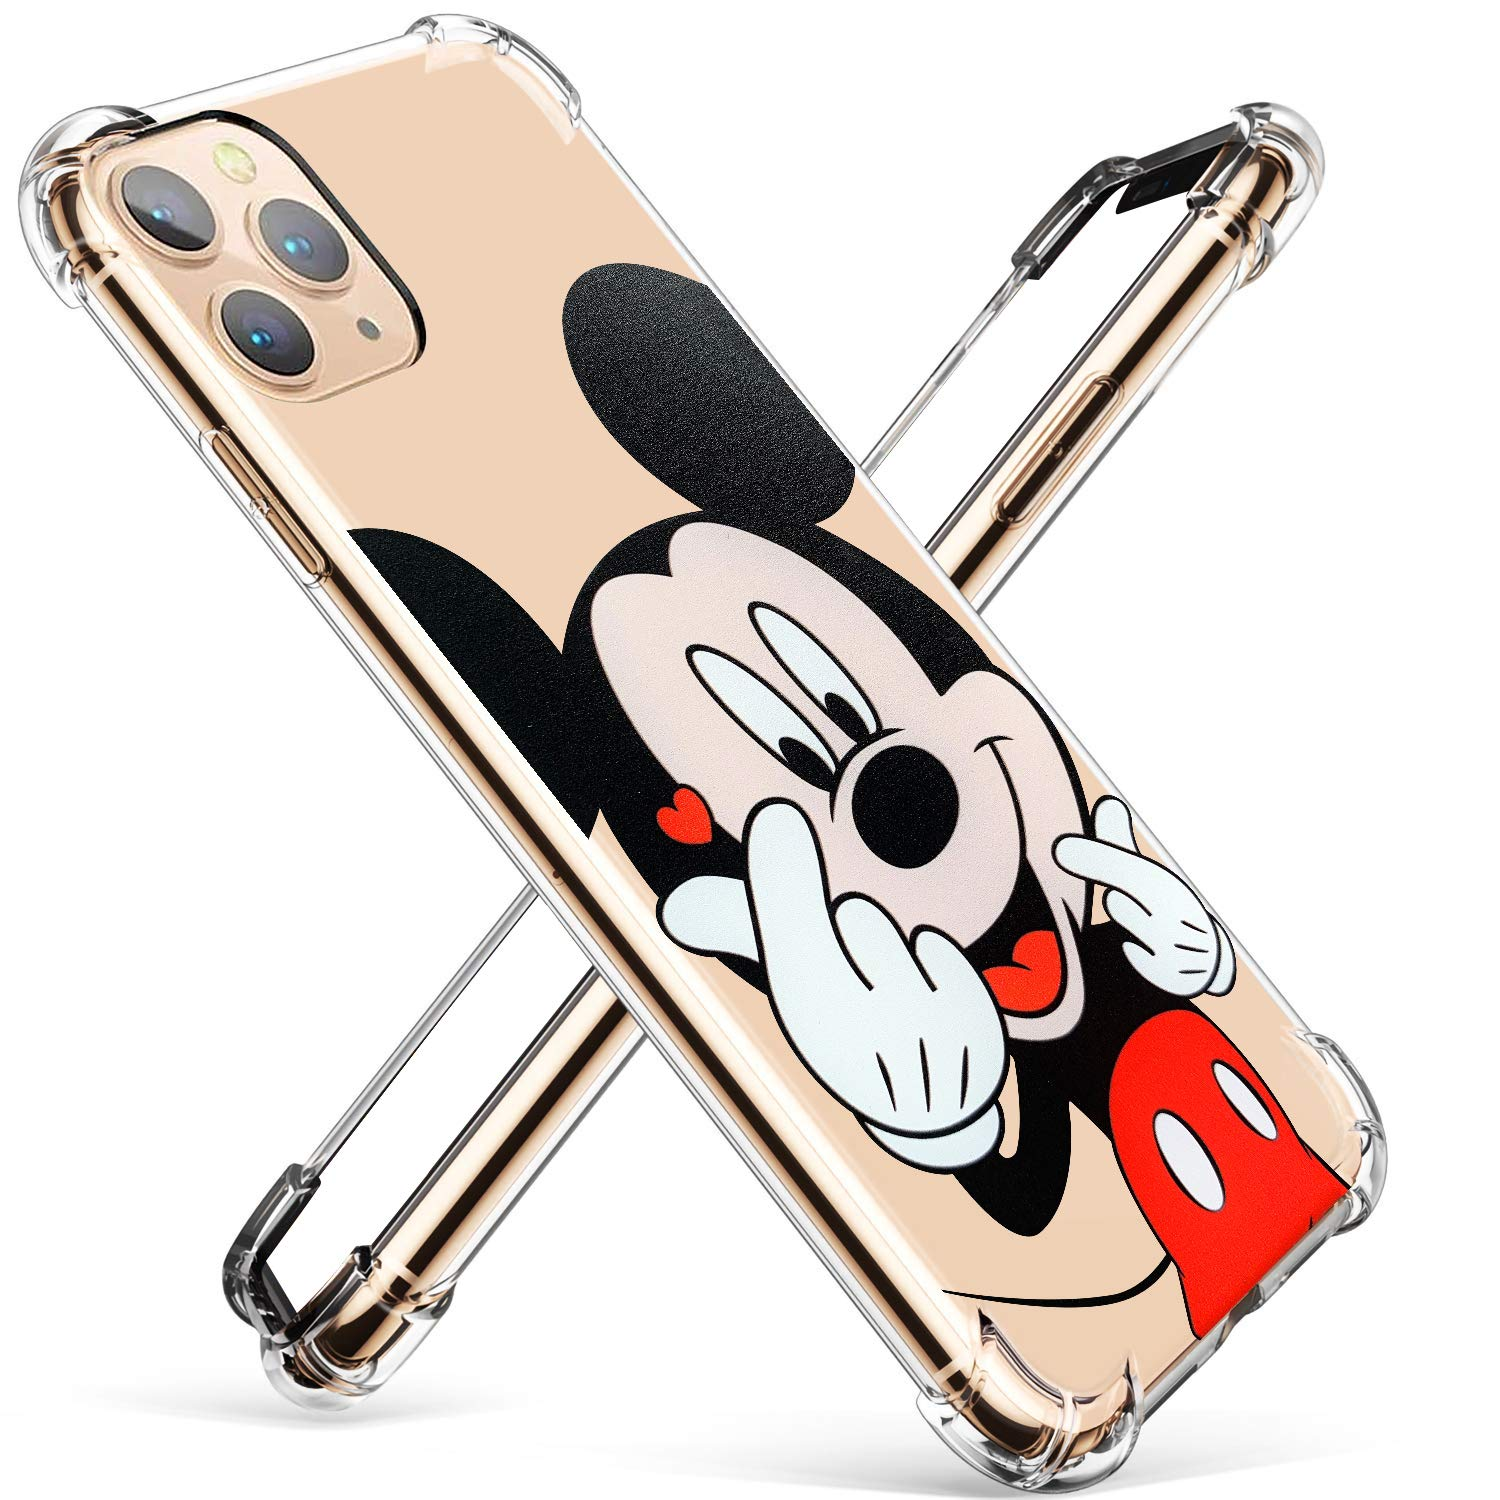 """Darrnew Heart Mouse Case for iPhone 12 Pro Max Cartoon TPU Cute 3D Fun Cover, Kawaii Unique Kids Girls Women Cases, Funny Ultra-Thin Bumper Character Shockproof Protector for iPhone 12 Pro Max 6.7"""""""